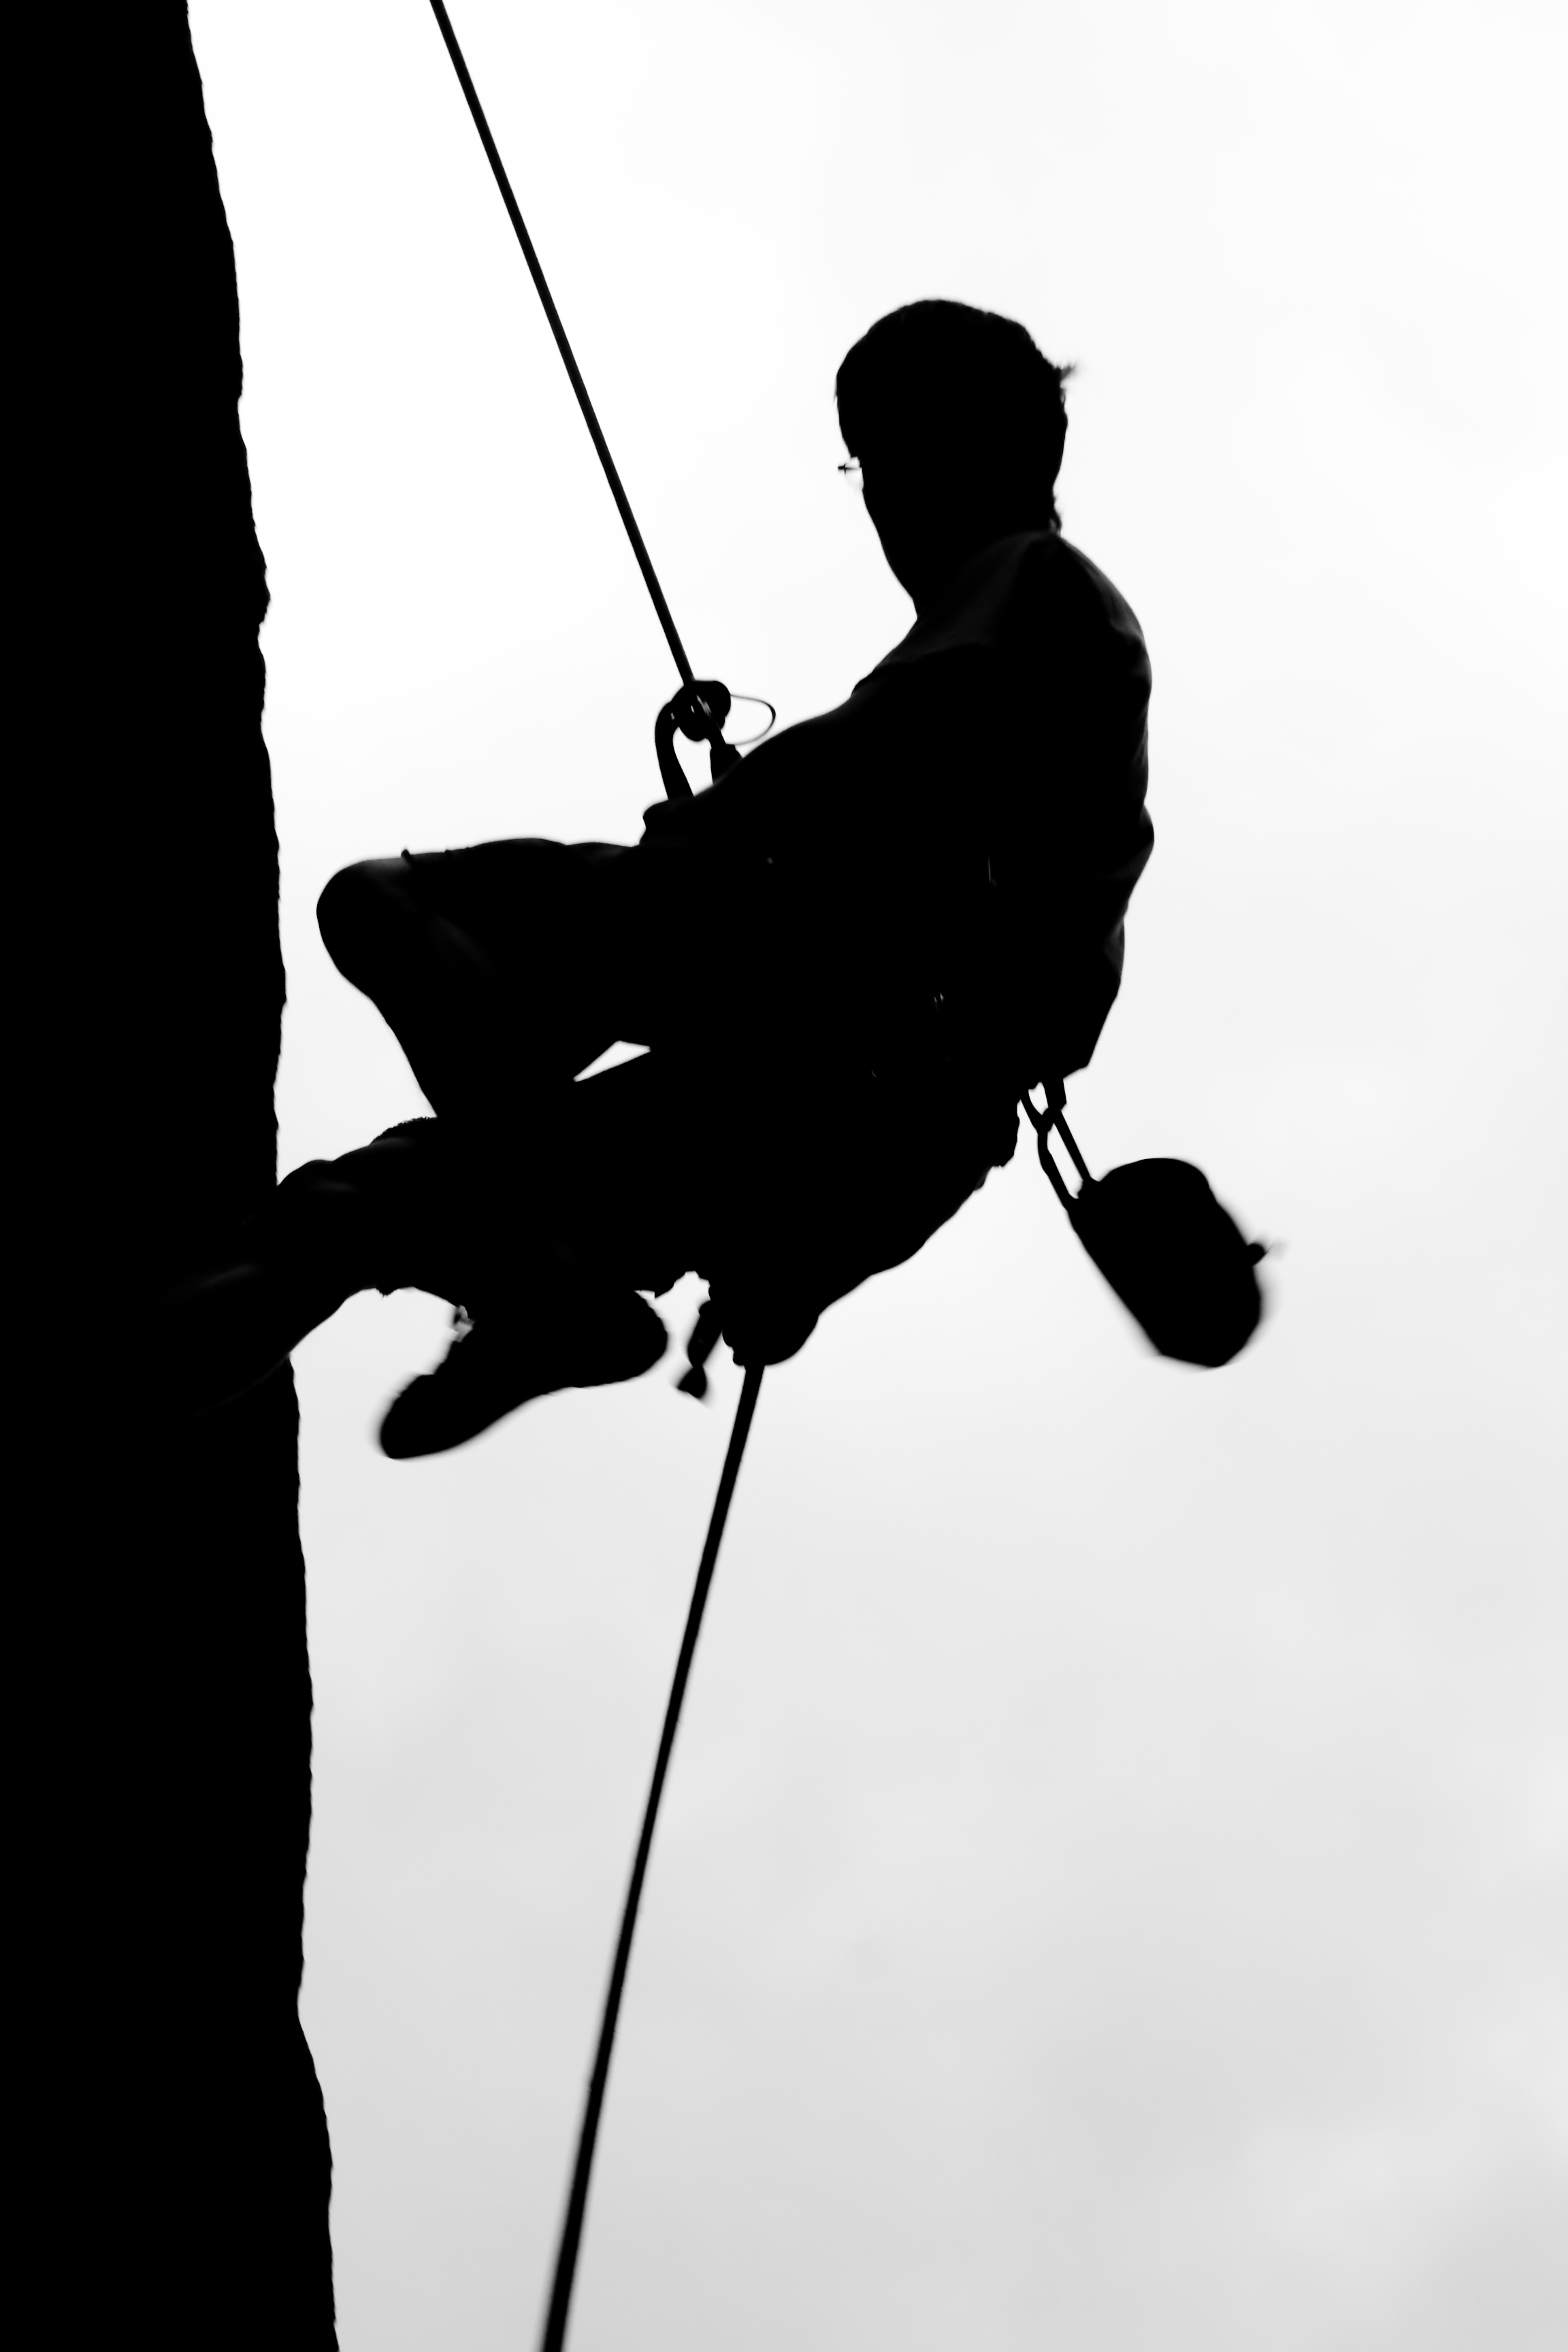 Climber on Rapel, rock, rappel, rockclimbing, rope, HQ Photo